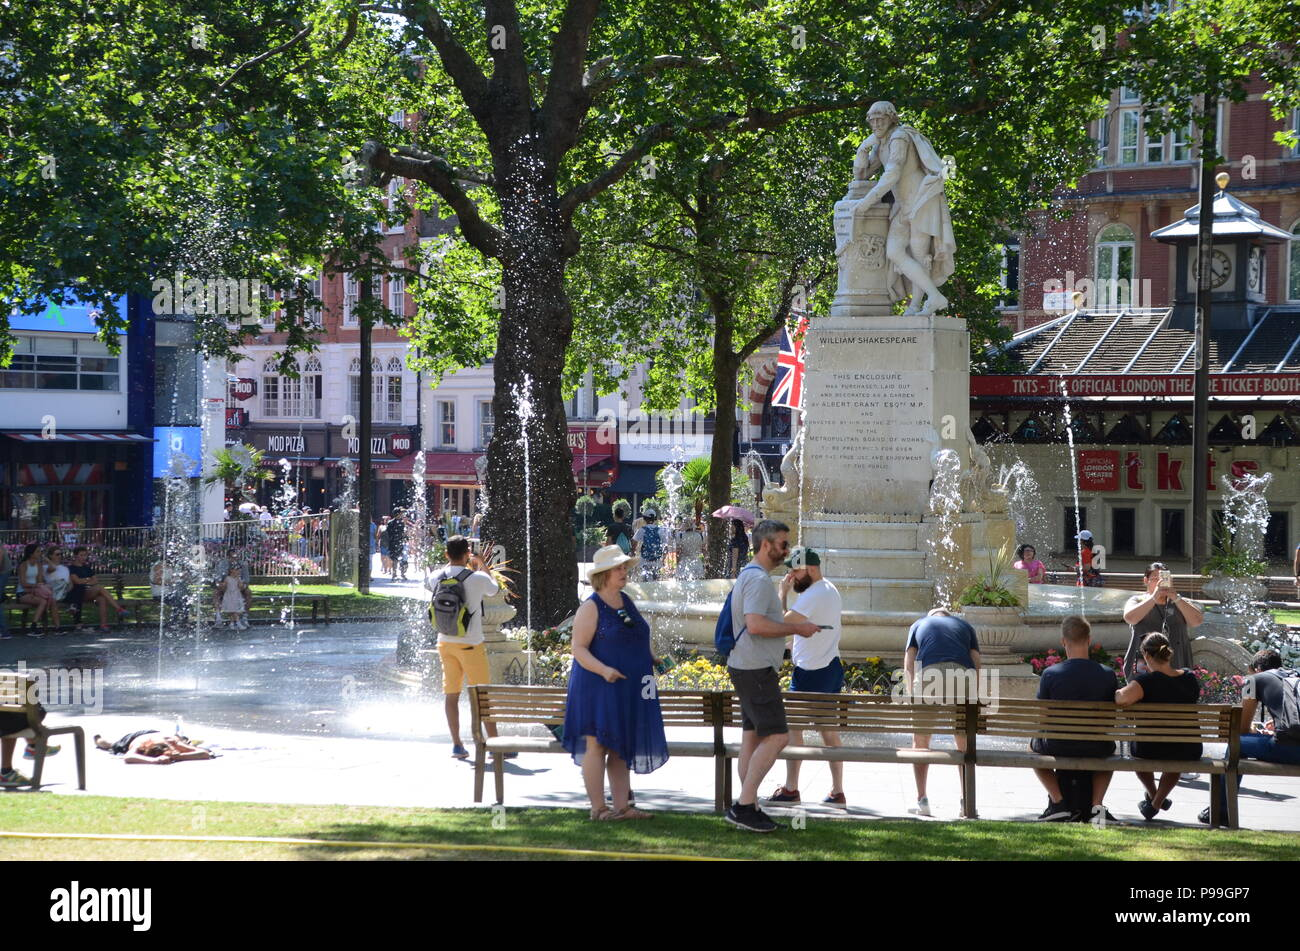 a homeless woman passed out in leicester square gardens london with tourists 2018 - Stock Image